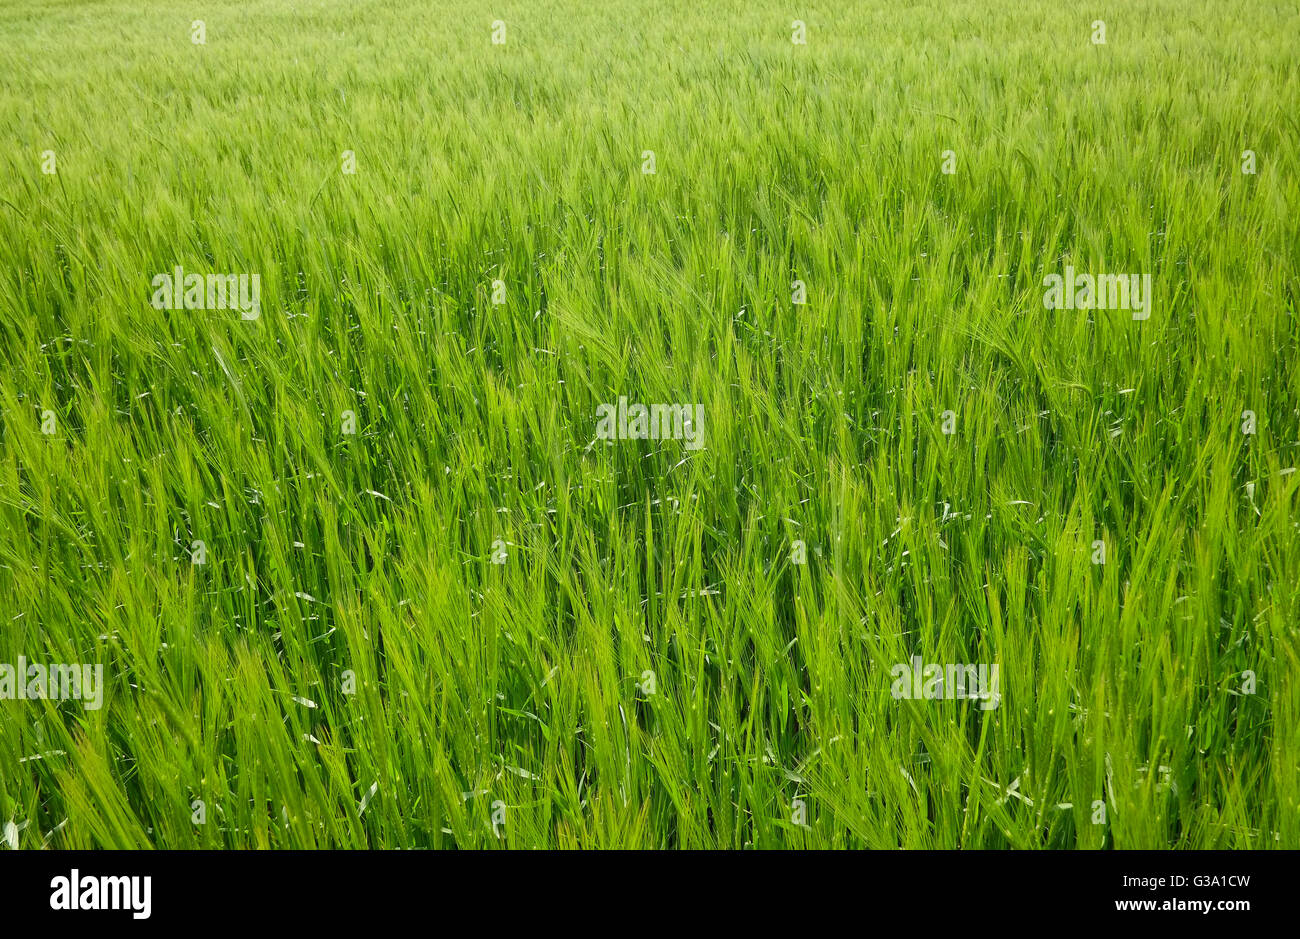 early spring wheat crop growing in field, norfolk, england - Stock Image